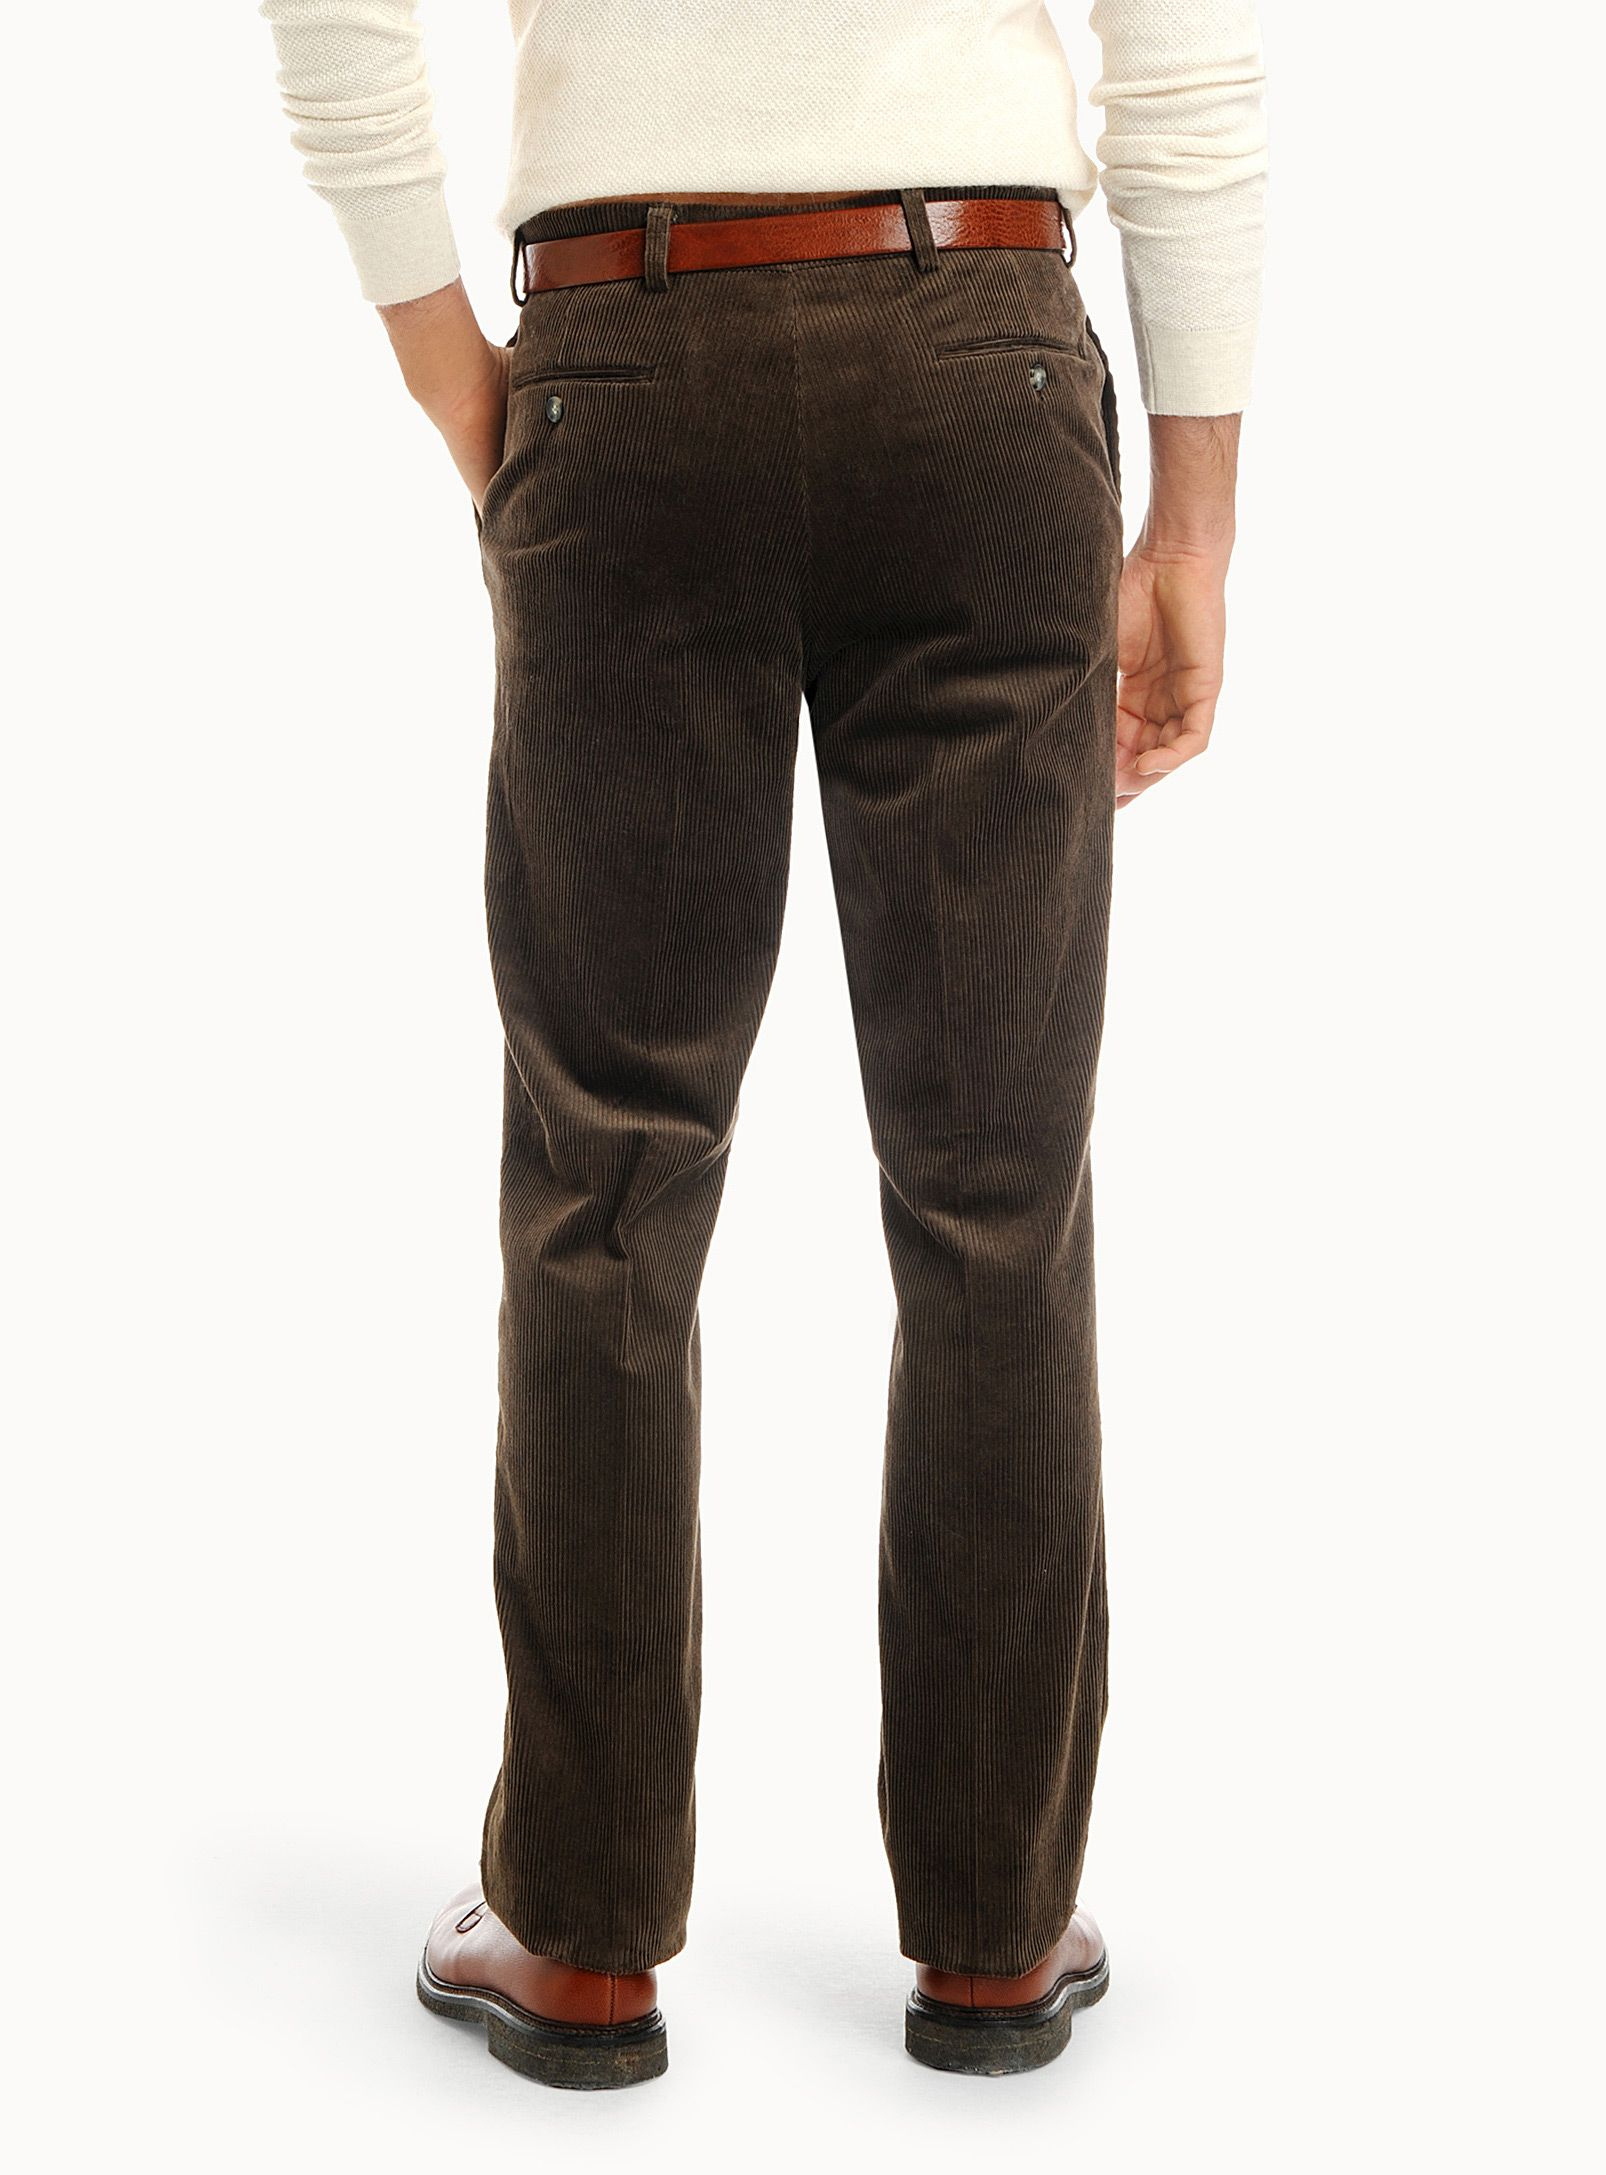 Simons - brown corduroy pants (back) - pantalon en velours côtelé marron